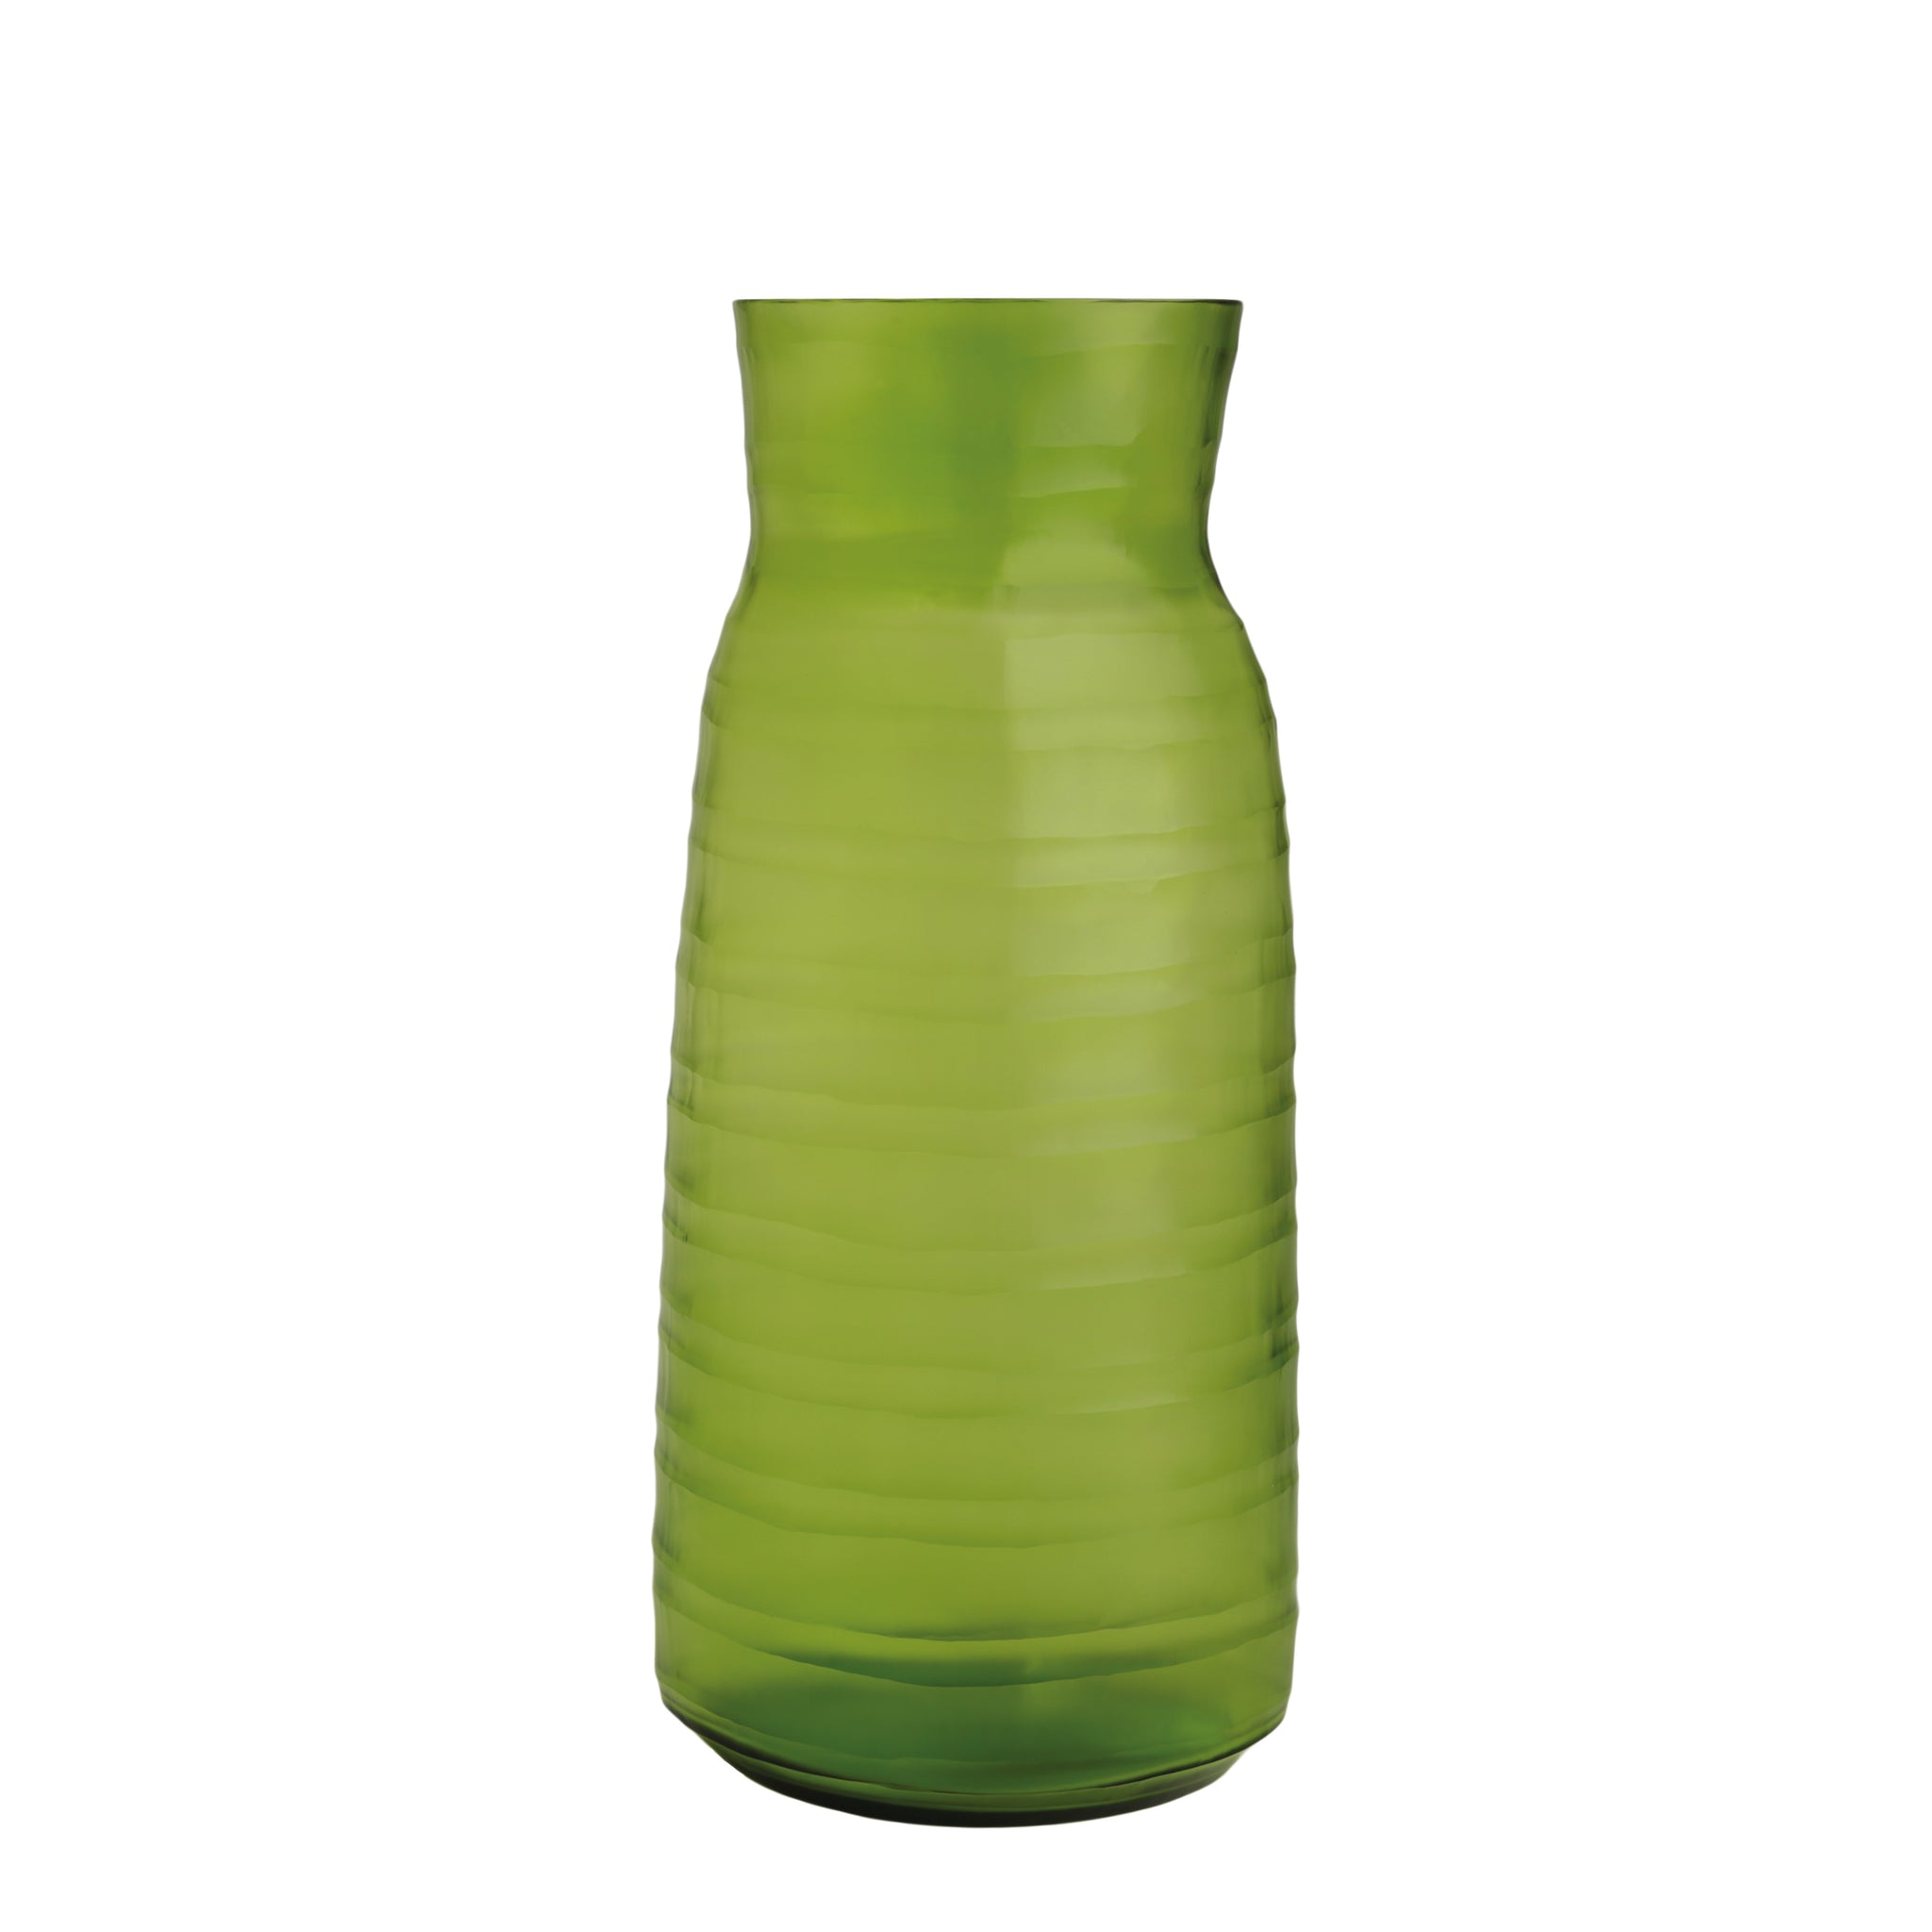 Mathura Tall Vase - Lemon Green